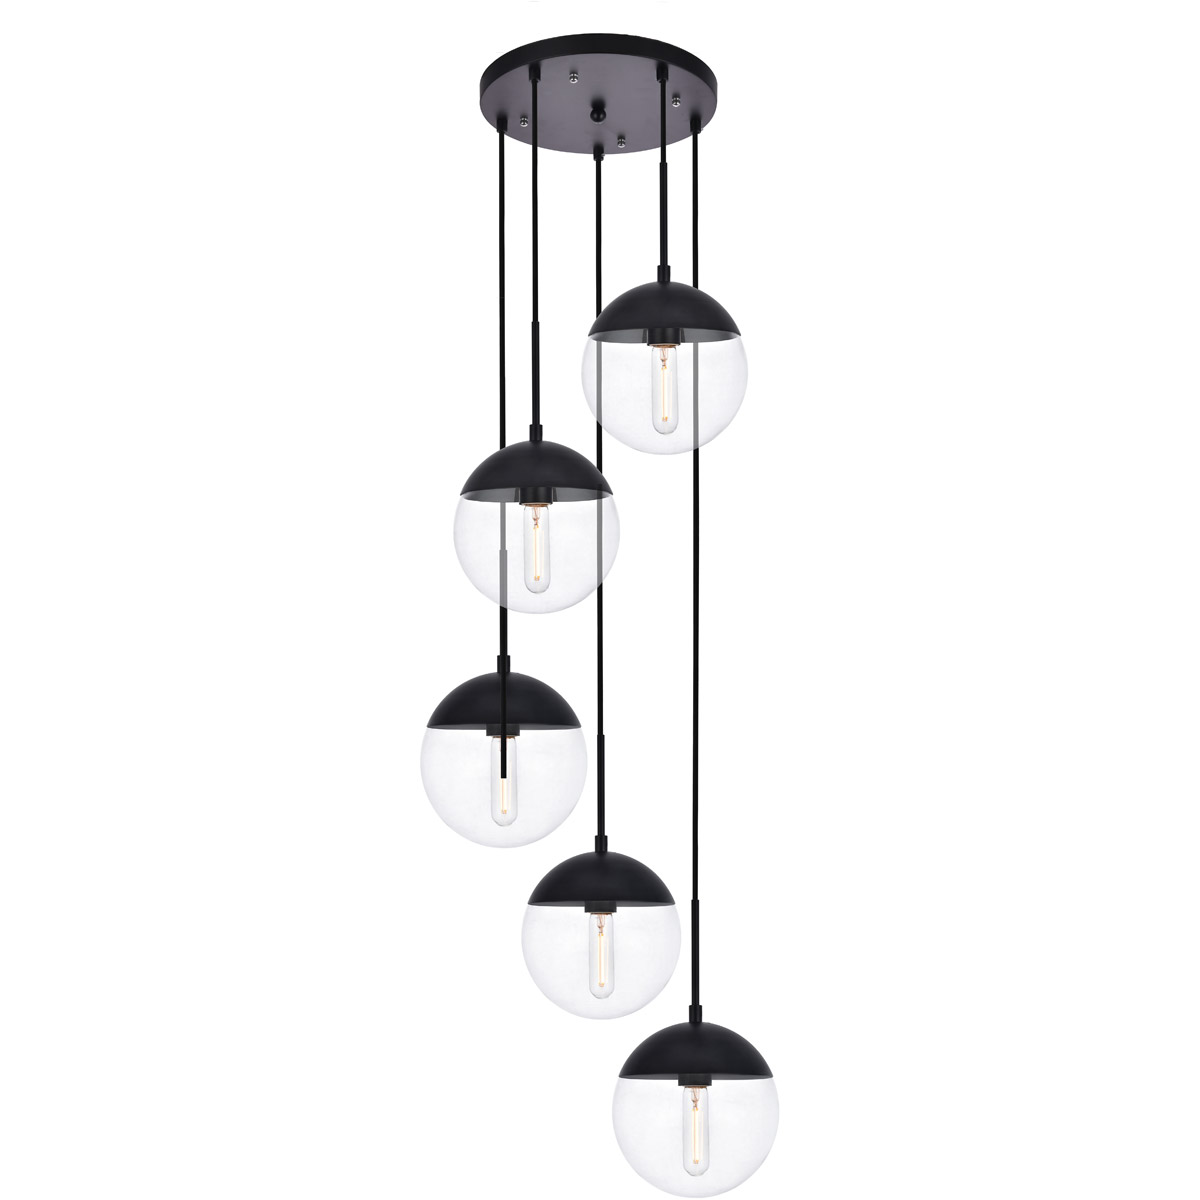 Pendants 5 light fixtures with black finish metal glass material e26 bulb 18 200 watts